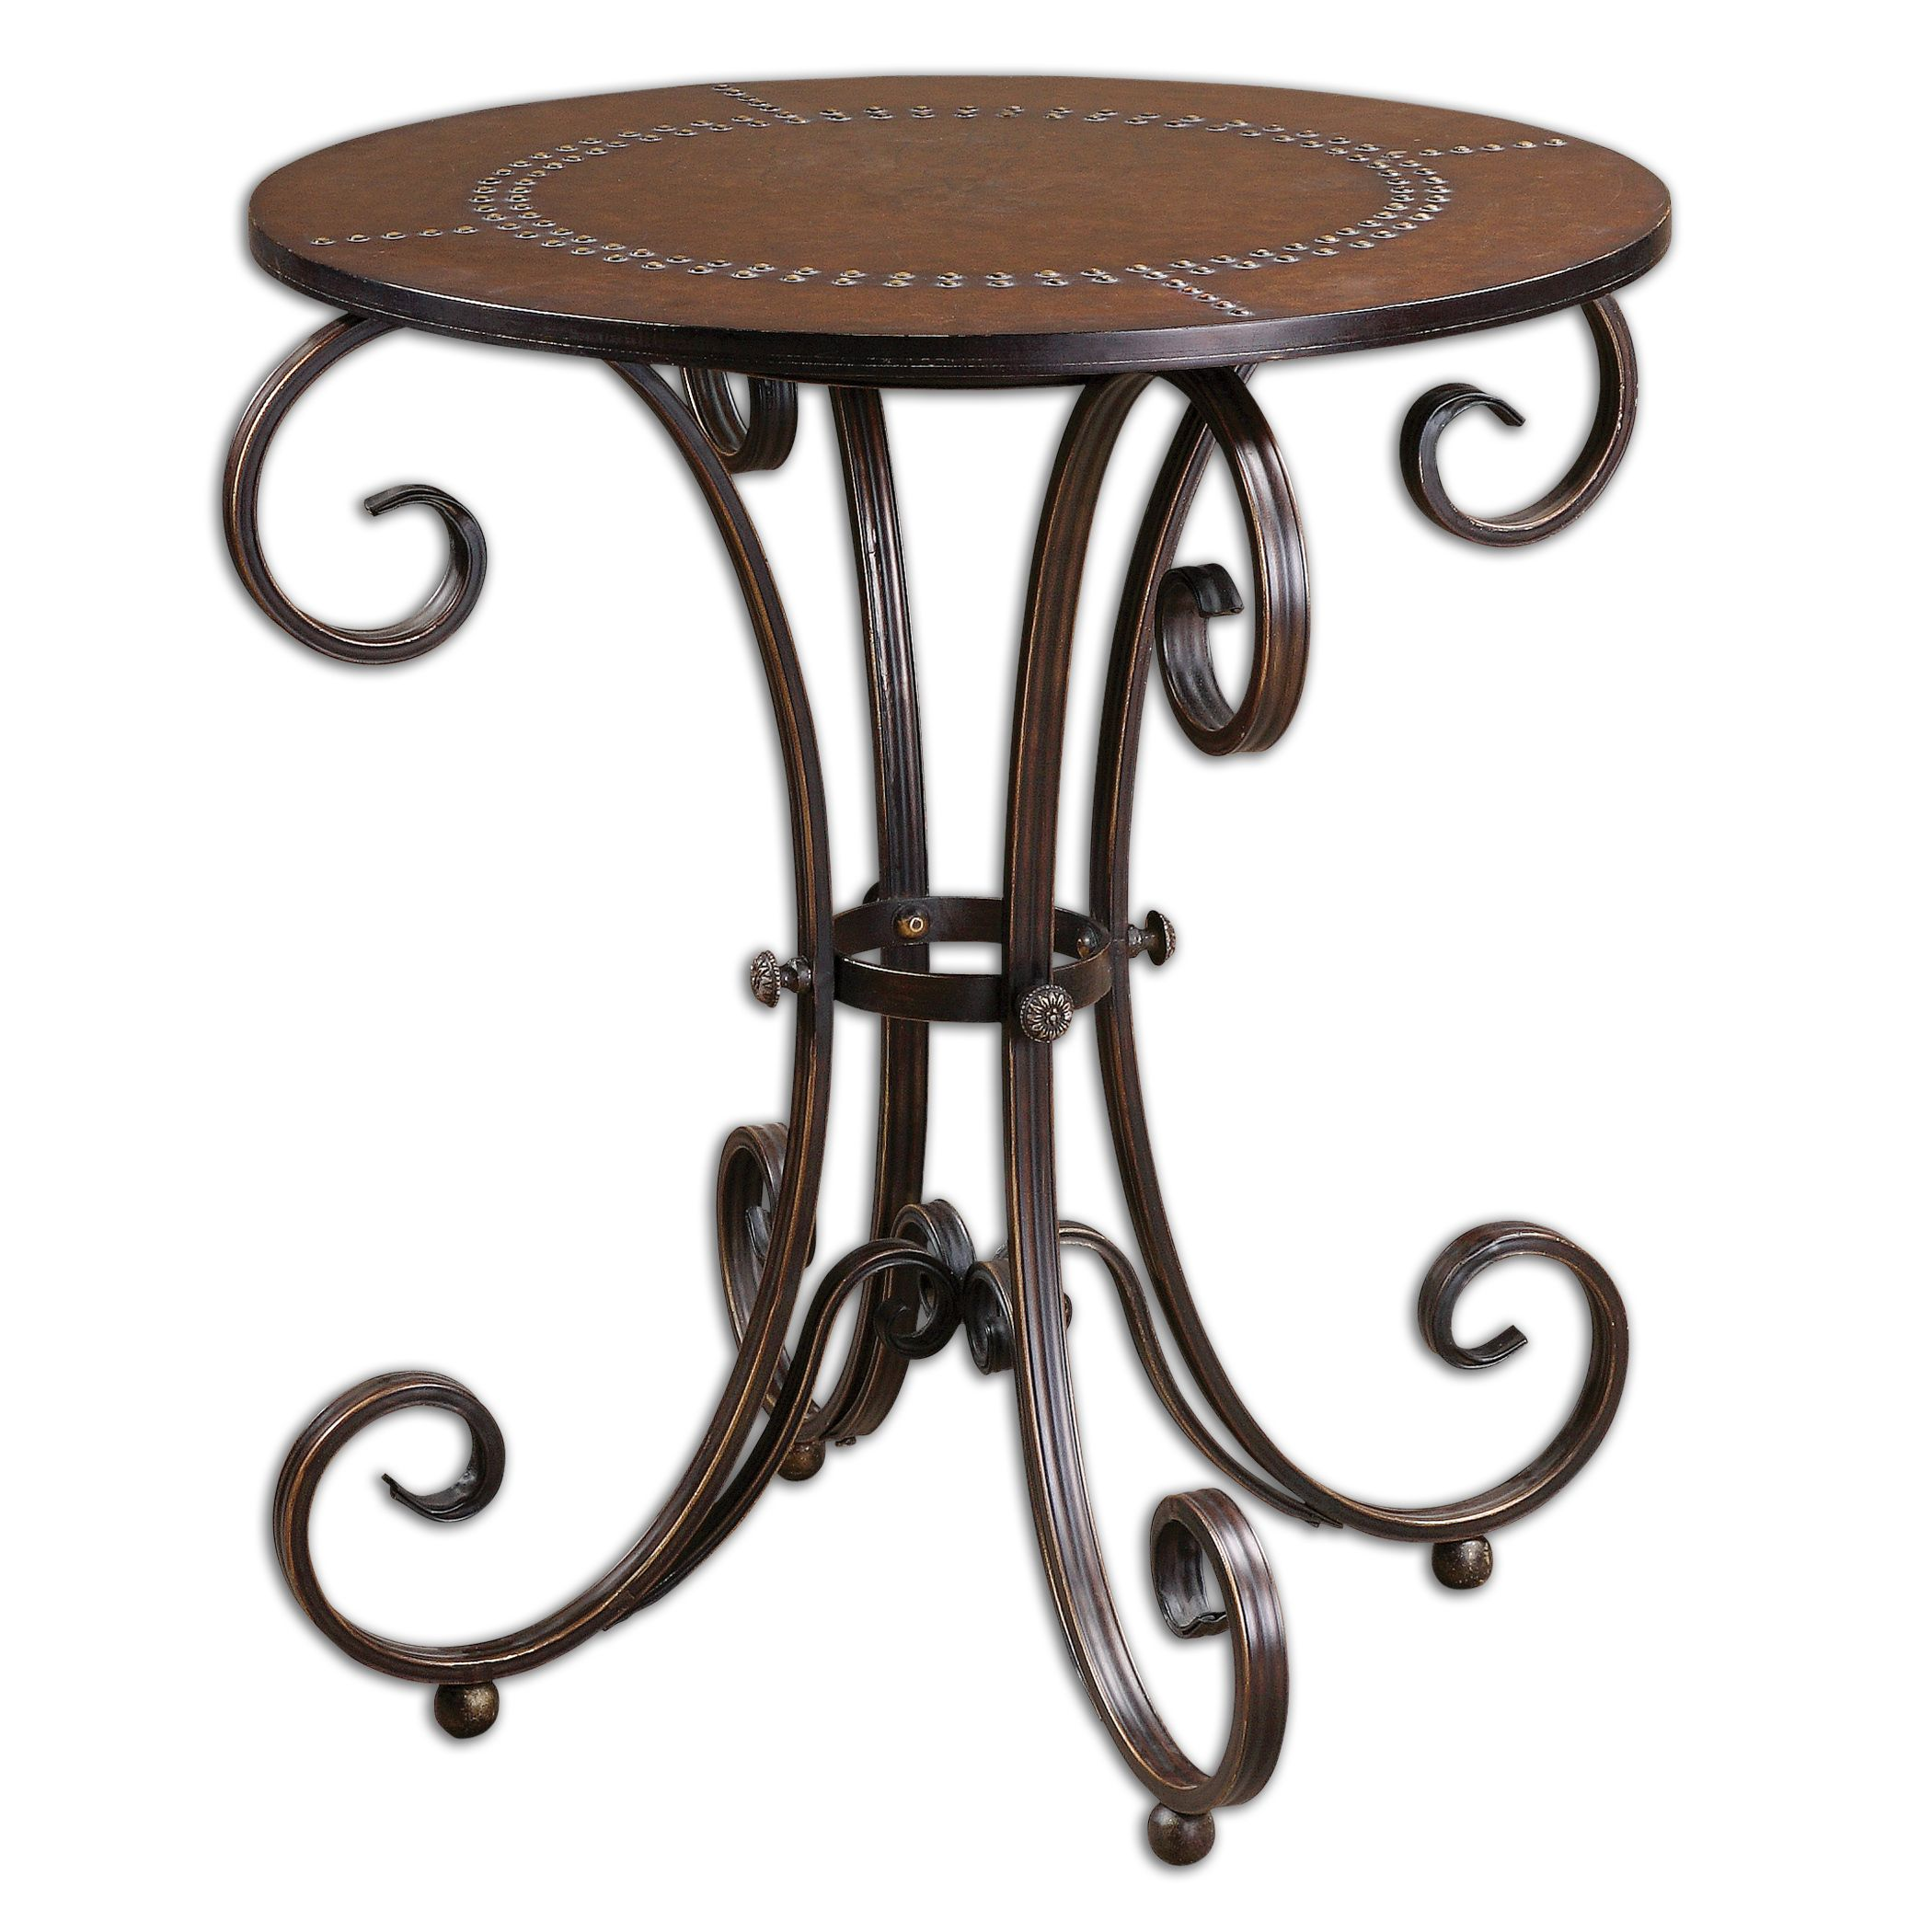 uttermost lyra accent table client mace martel patio furniture with umbrella hole work light dresser feet outdoor covers gray dining best oval marble top inexpensive chairs fur